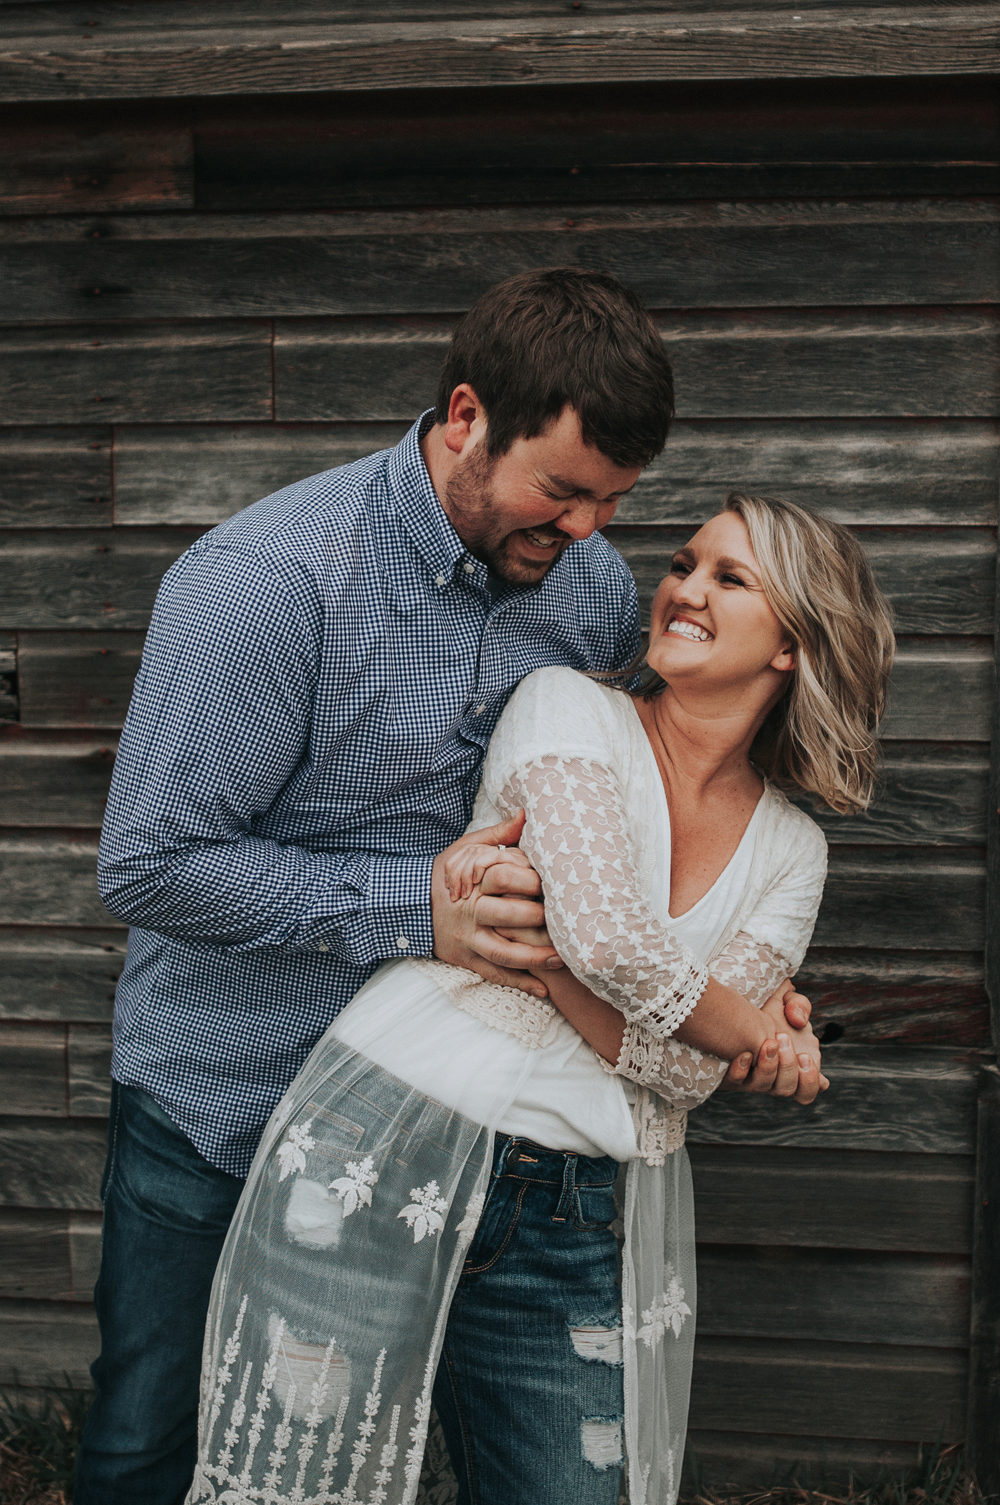 kaylie-sirek-nebraska-wedding-engagement-photographer-photography-grand-island-kearney-hastings-lincoln-16.png